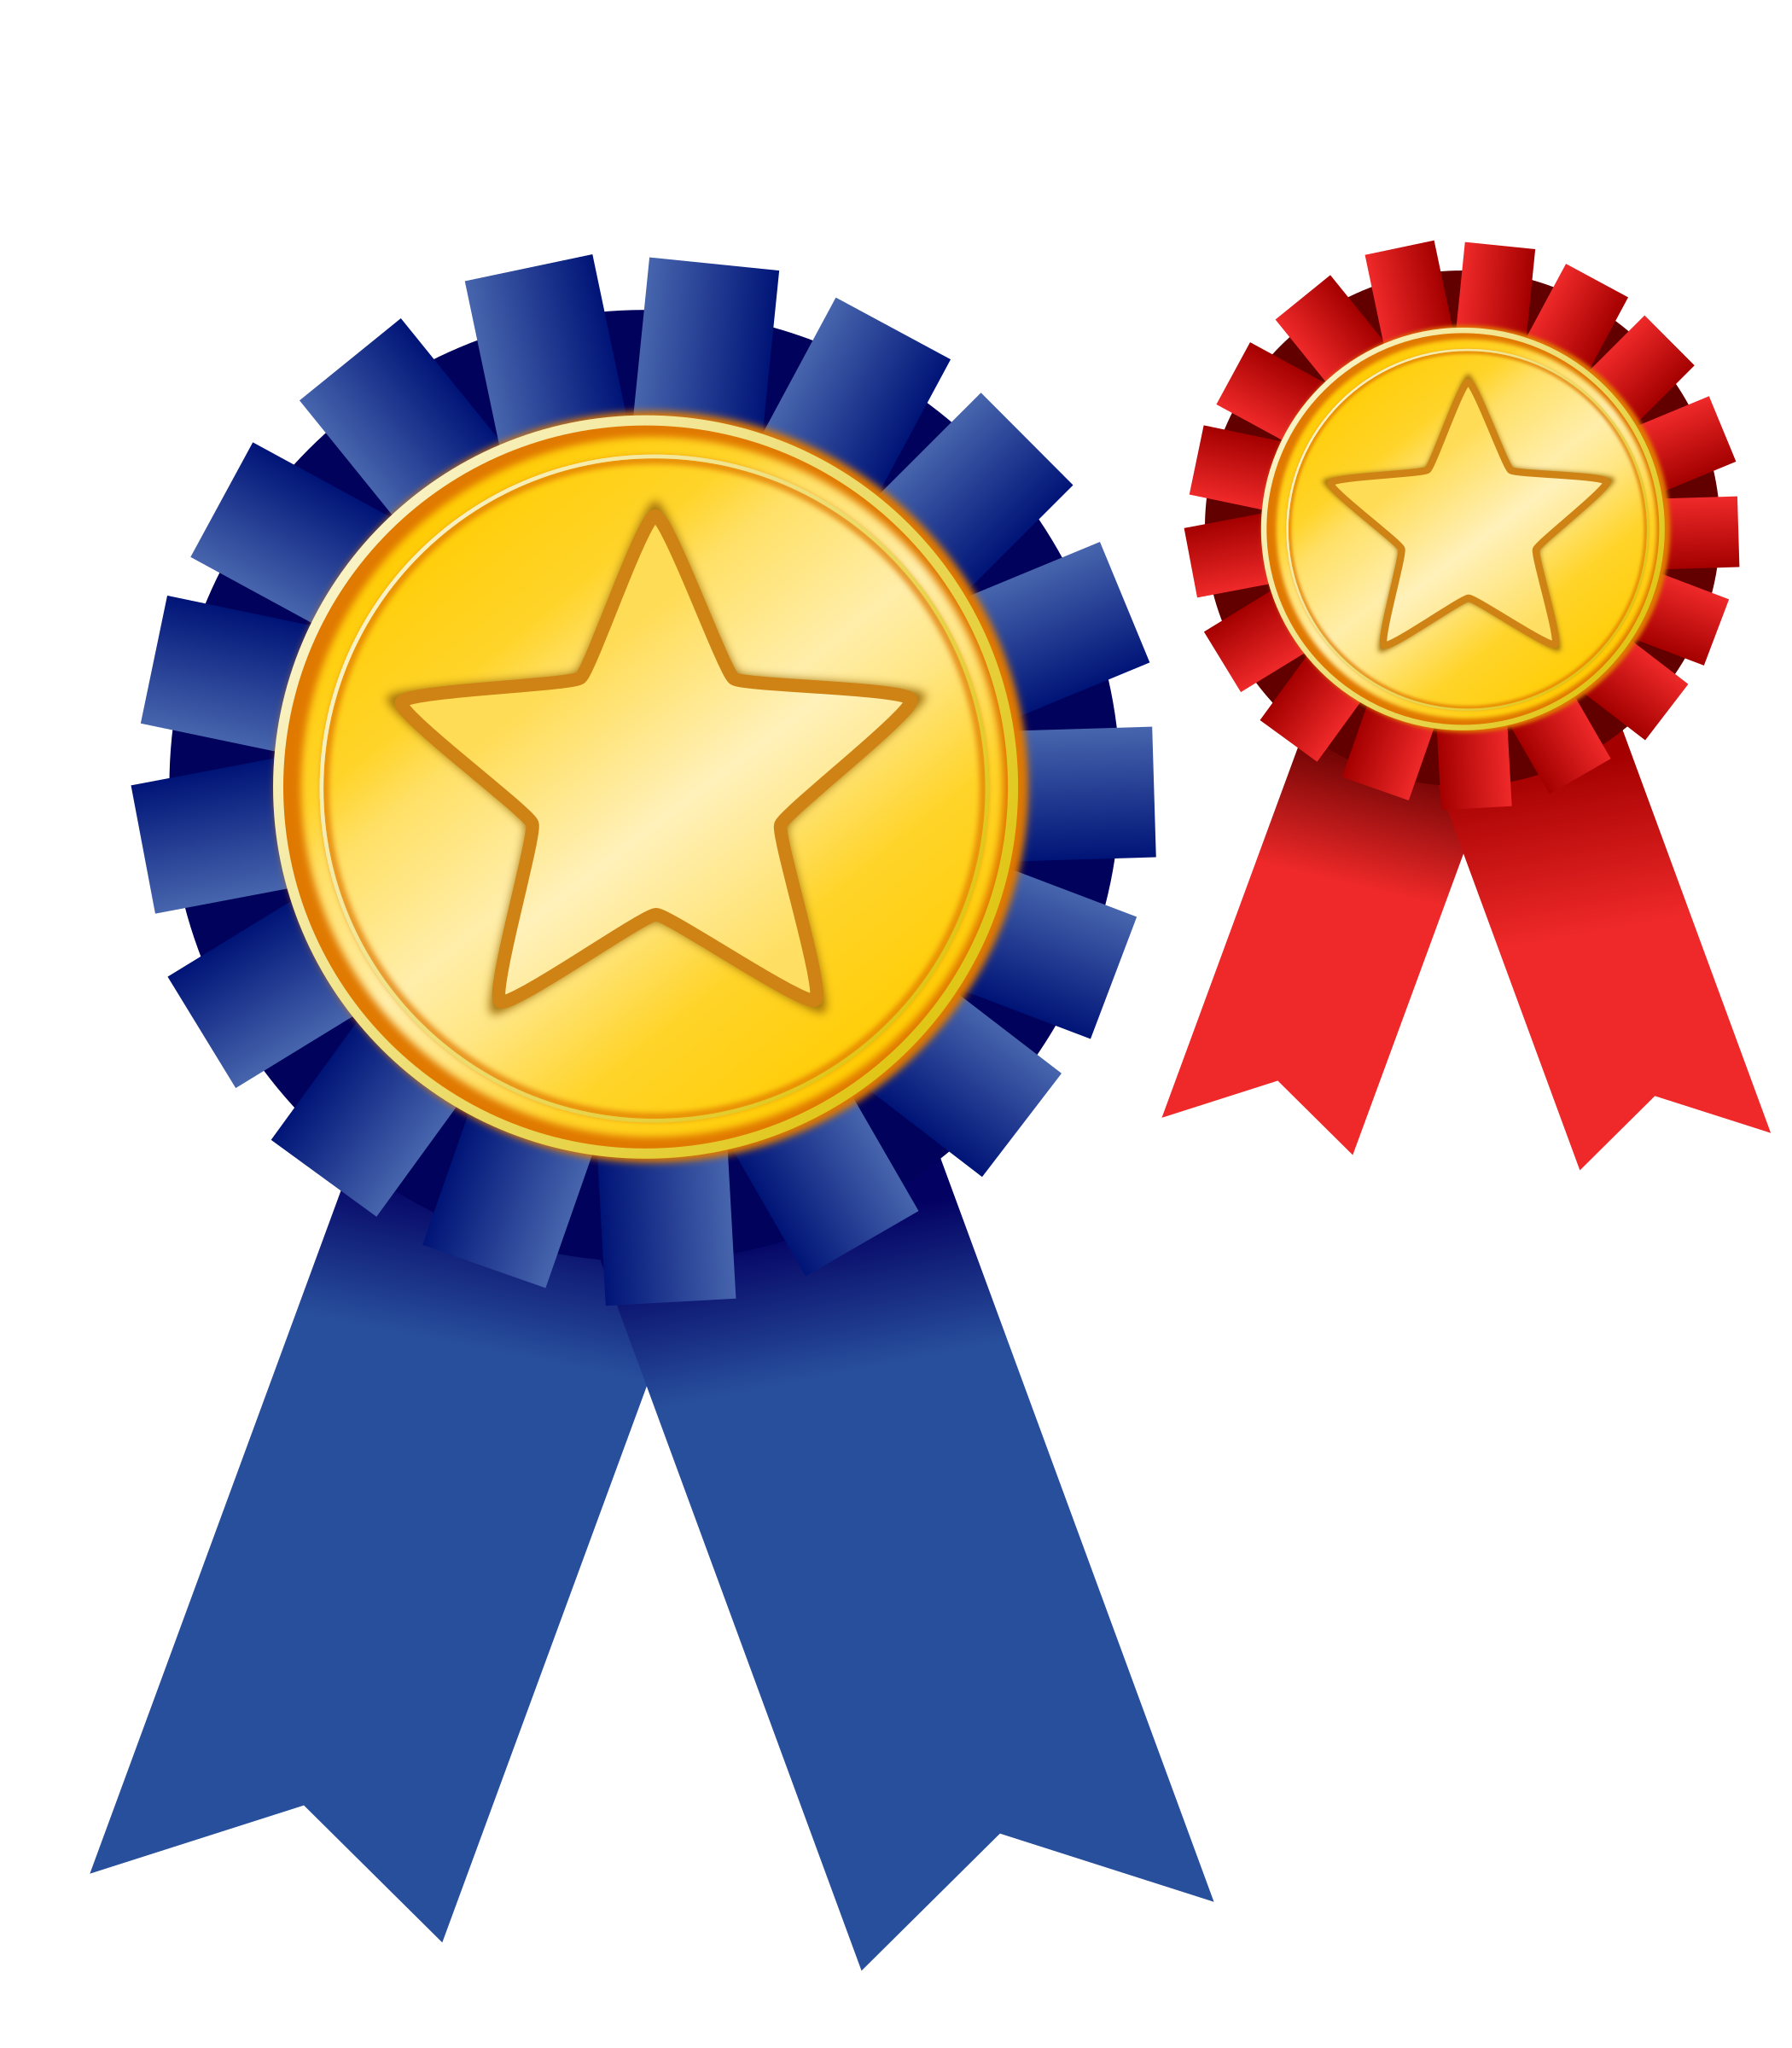 clip art medals free - photo #28